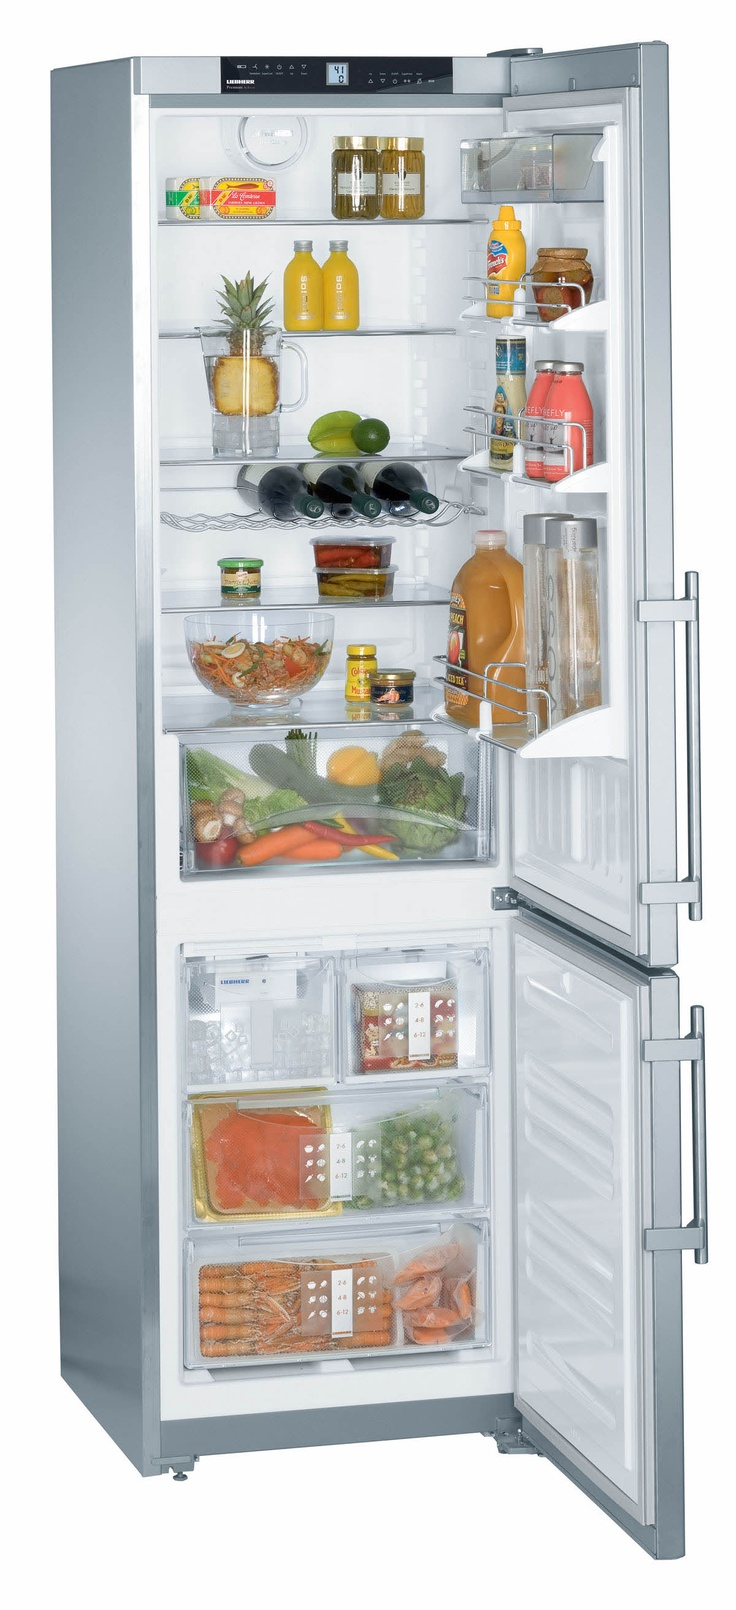 """CS1360 by Liebherr in Orlando, FL - 24"""" Refrigerator & Freezer - I don't care where I get it from... THAT is the fridge that I want - I saw it at this place in Paramus, NJ and it's perfect for my place - I need it to be 24"""" wide - and... BAM!.."""